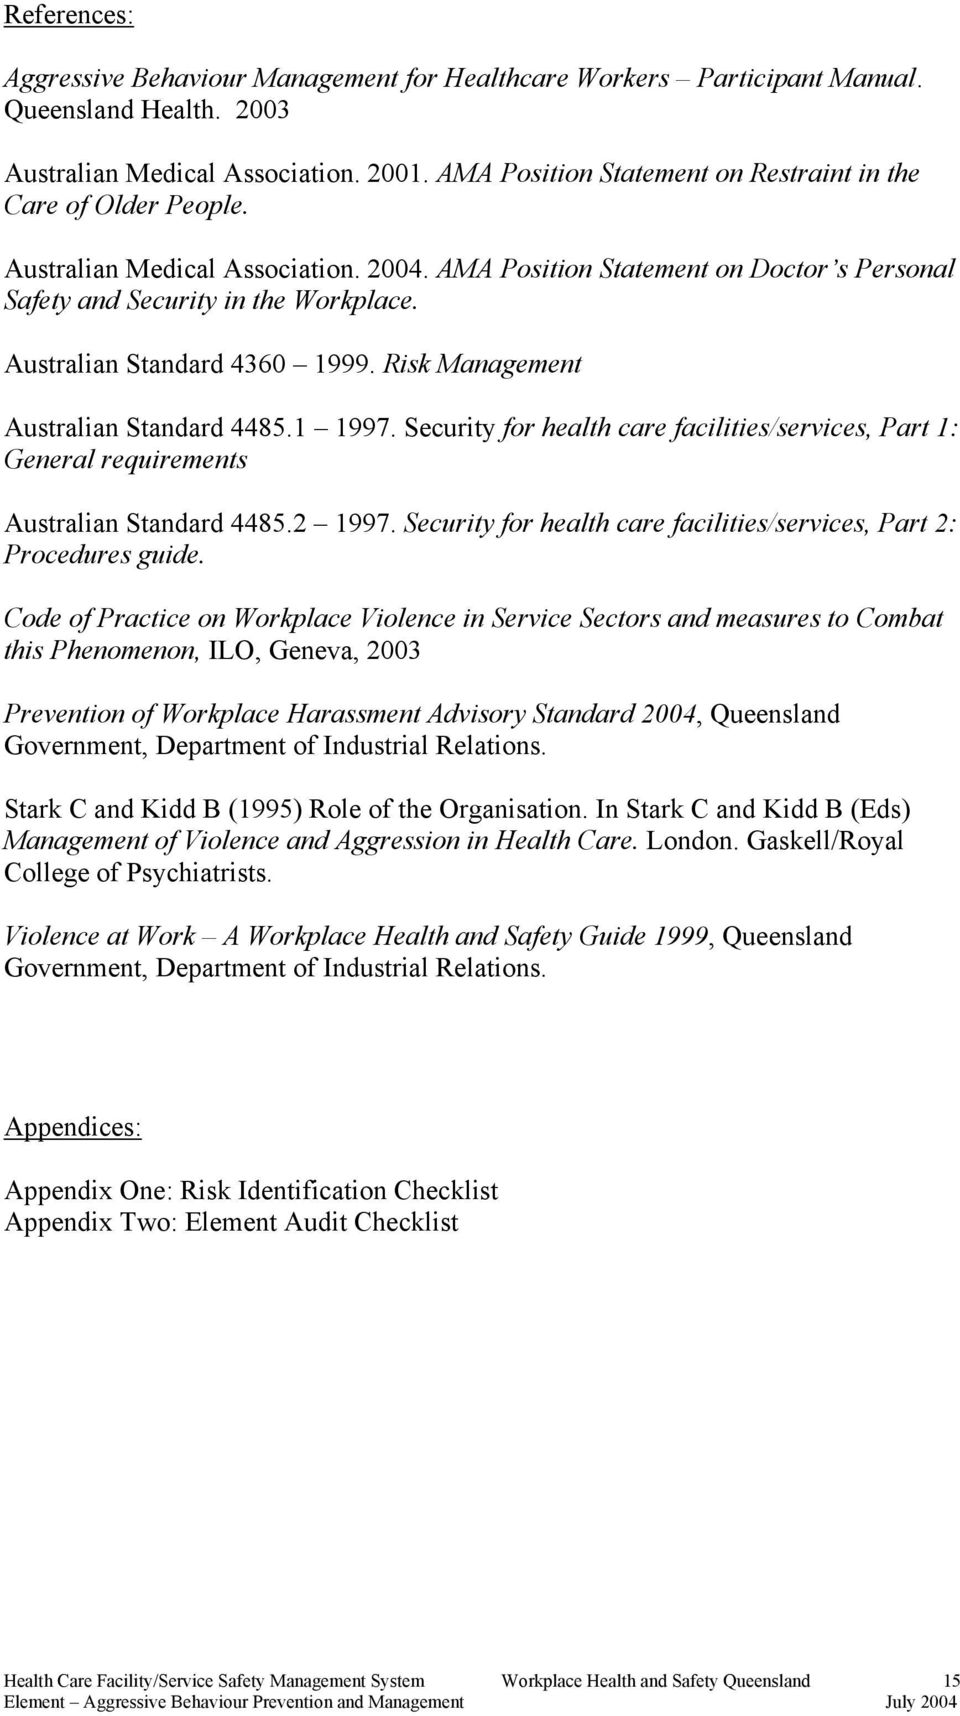 Australian Standard 4360 1999. Risk Management Australian Standard 4485.1 1997. Security for health care facilities/services, Part 1: General requirements Australian Standard 4485.2 1997.